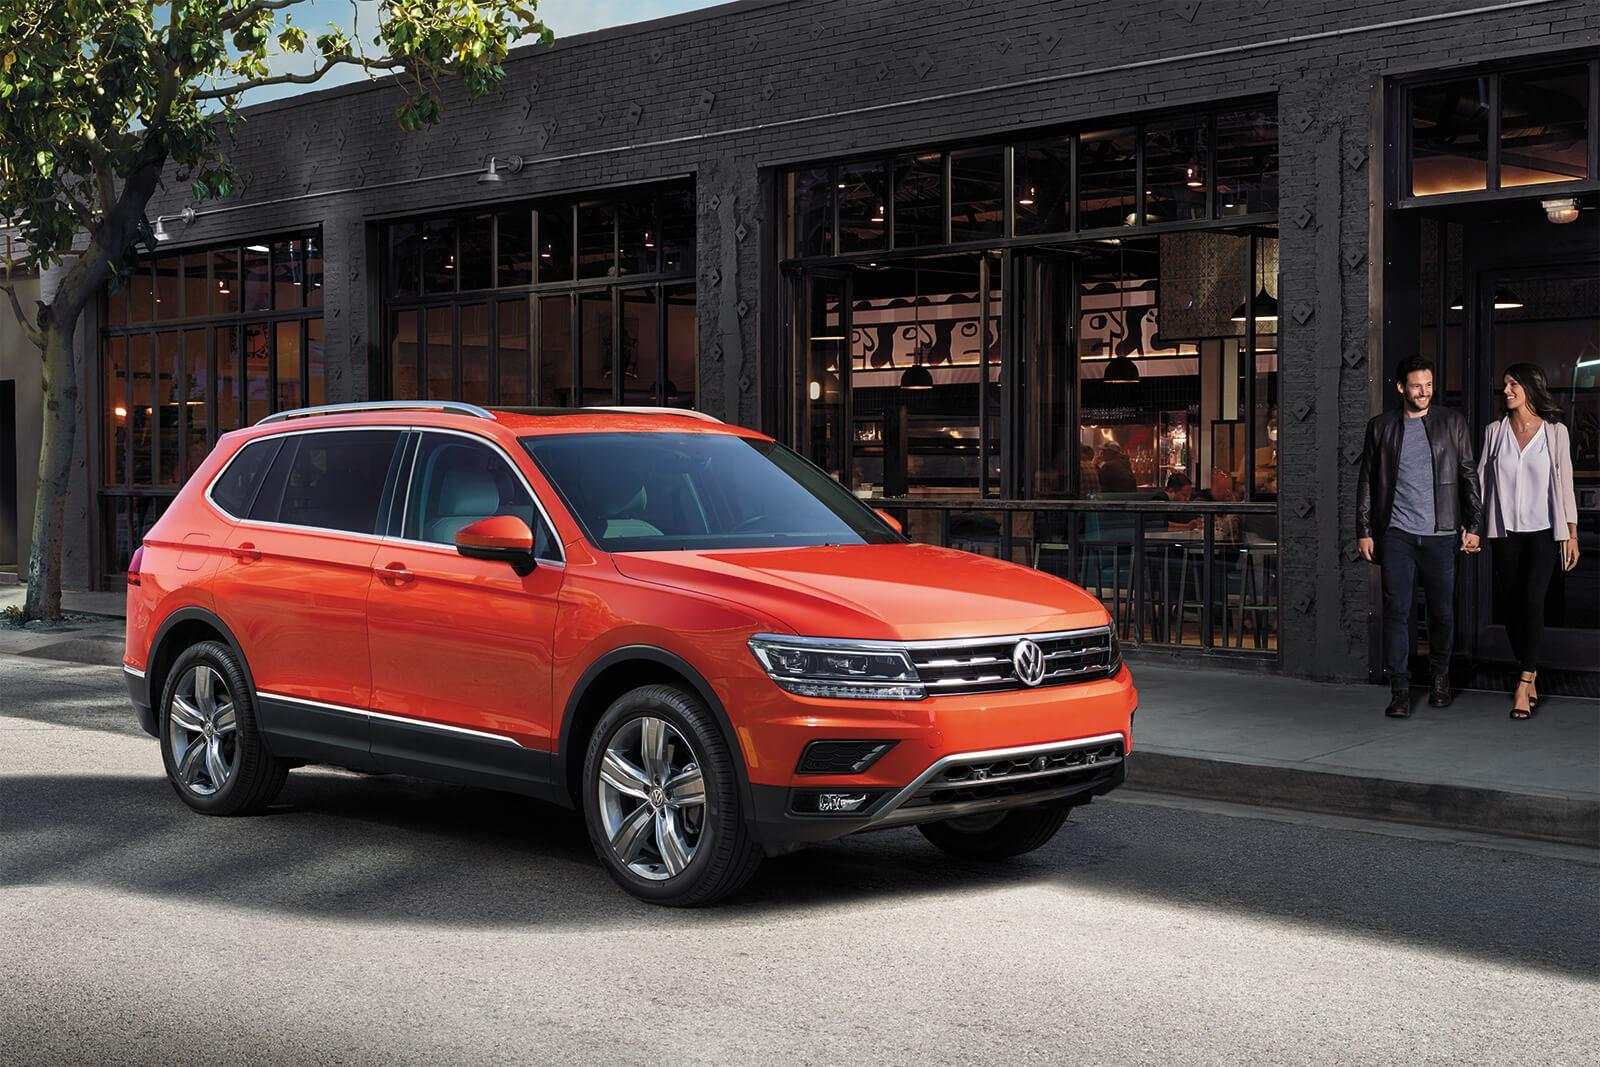 2019 VW Tiguan in Norristown, PA